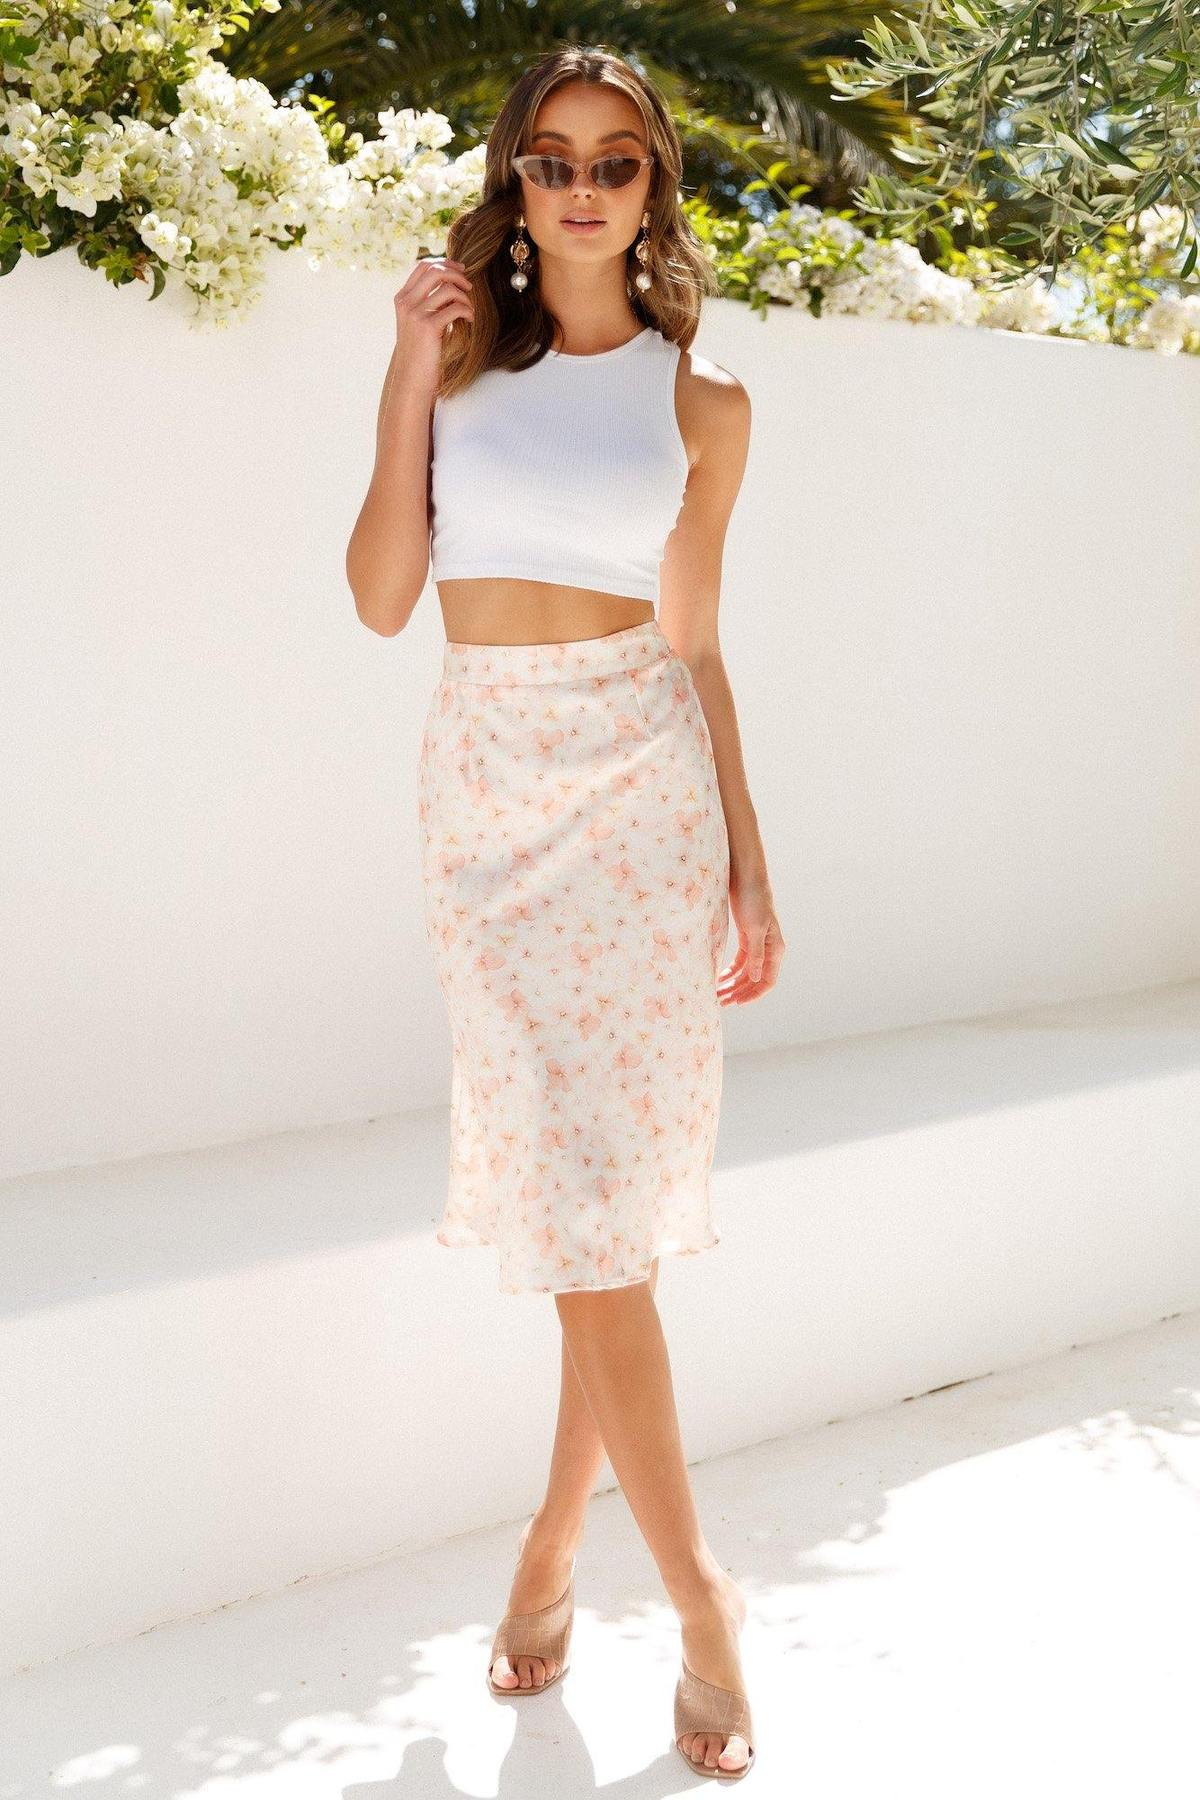 Cute boating outfit with midi skirt